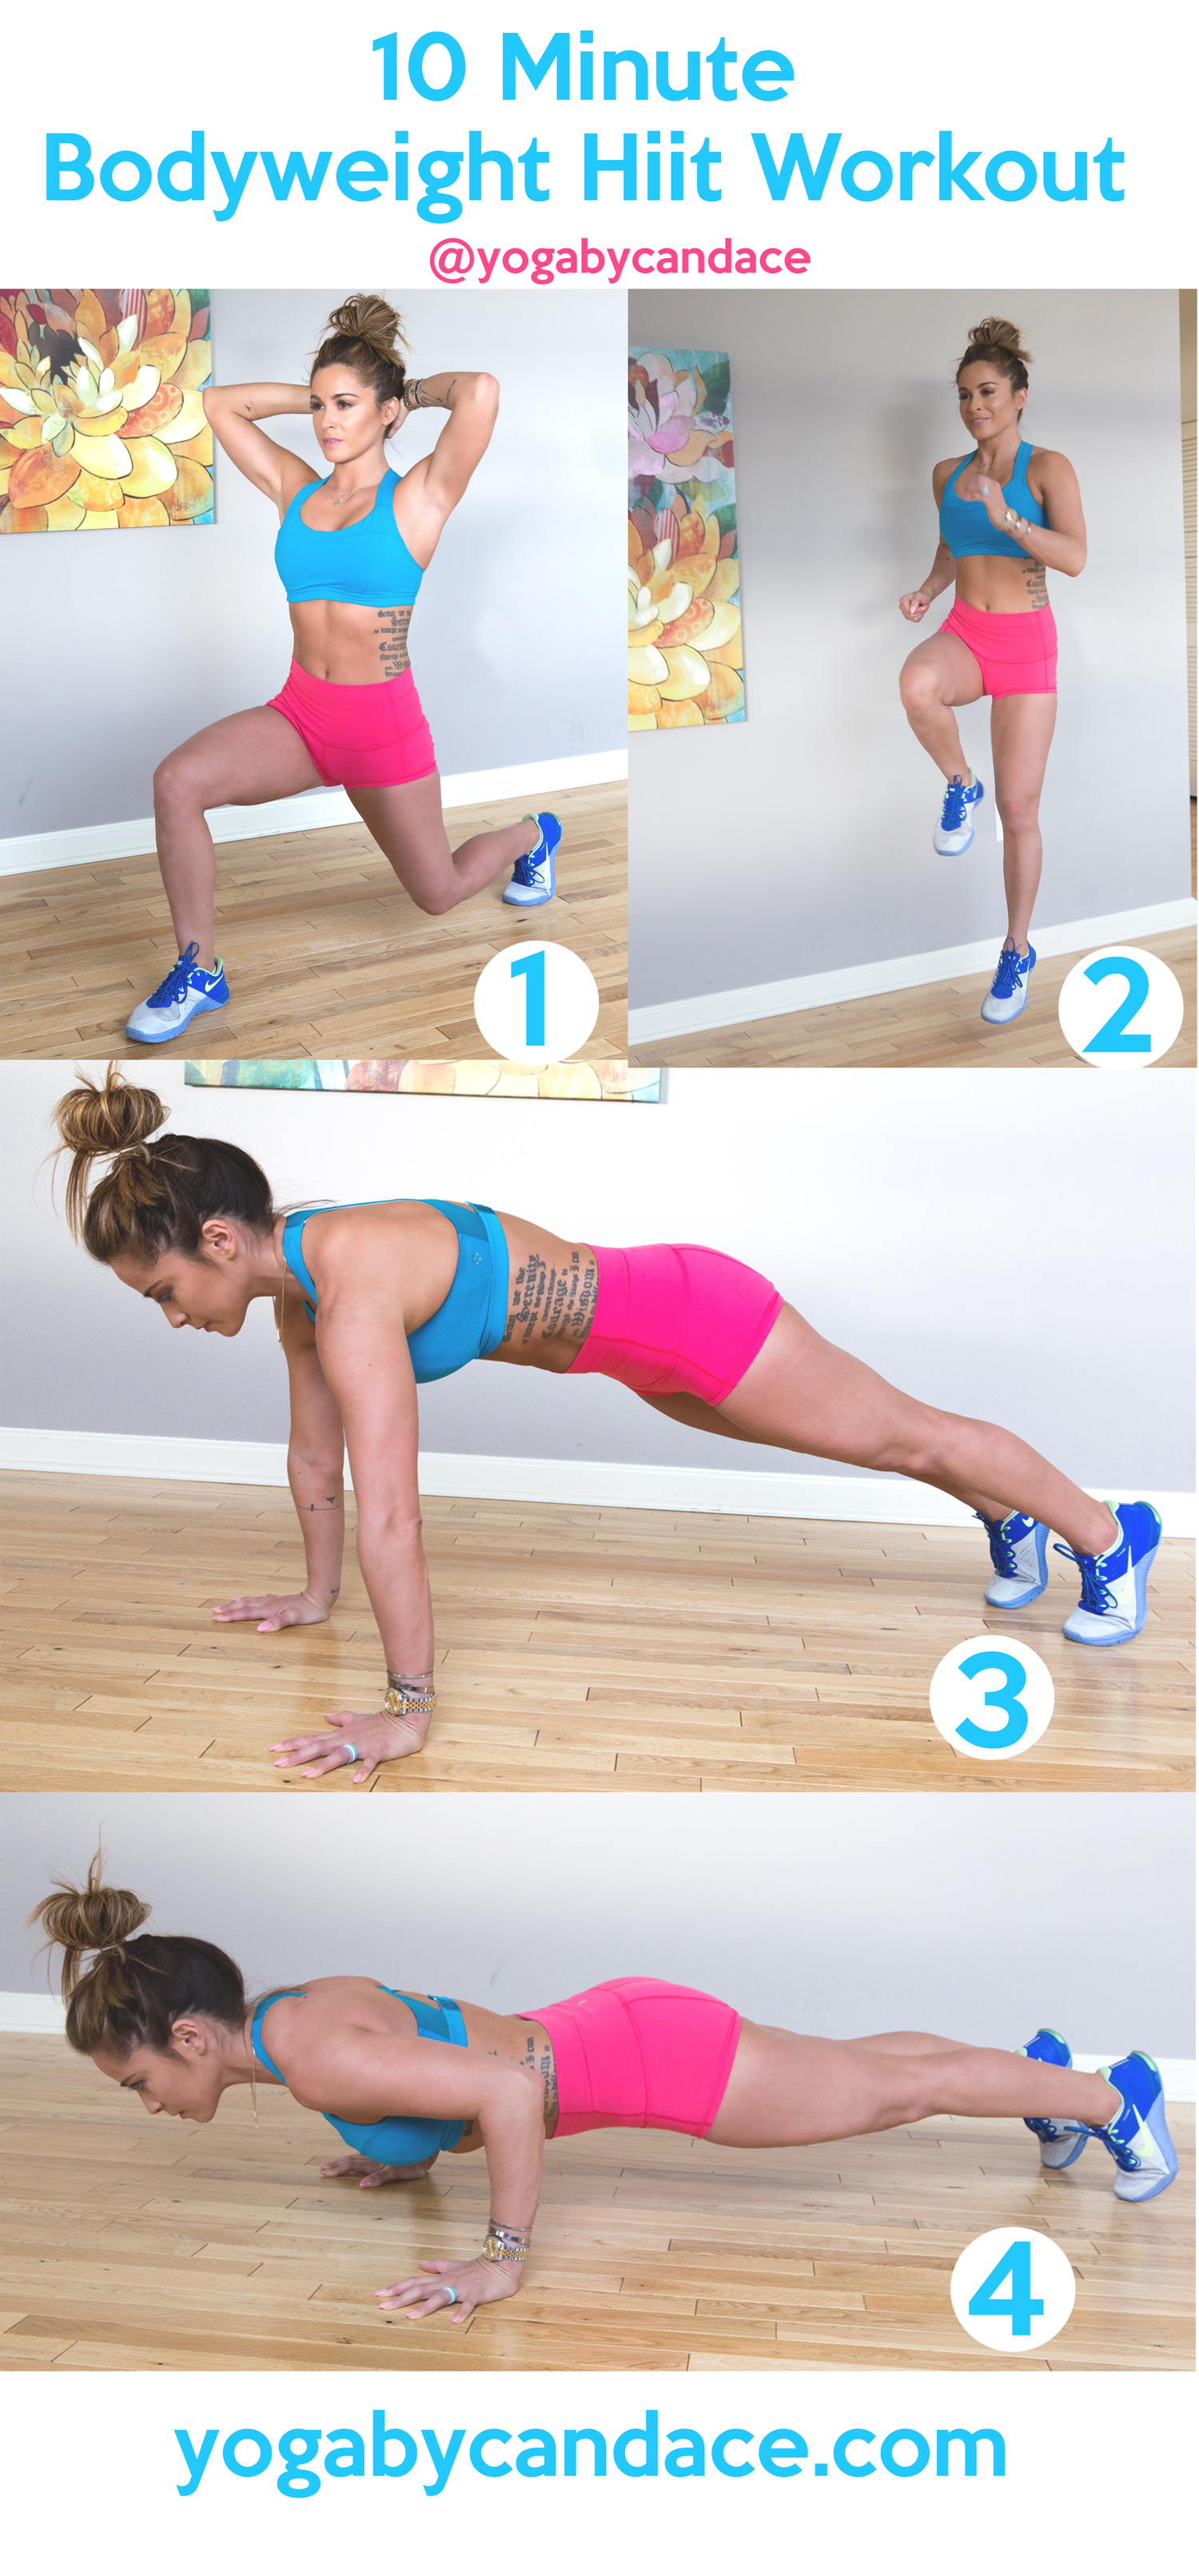 Bodyweight hiit workout